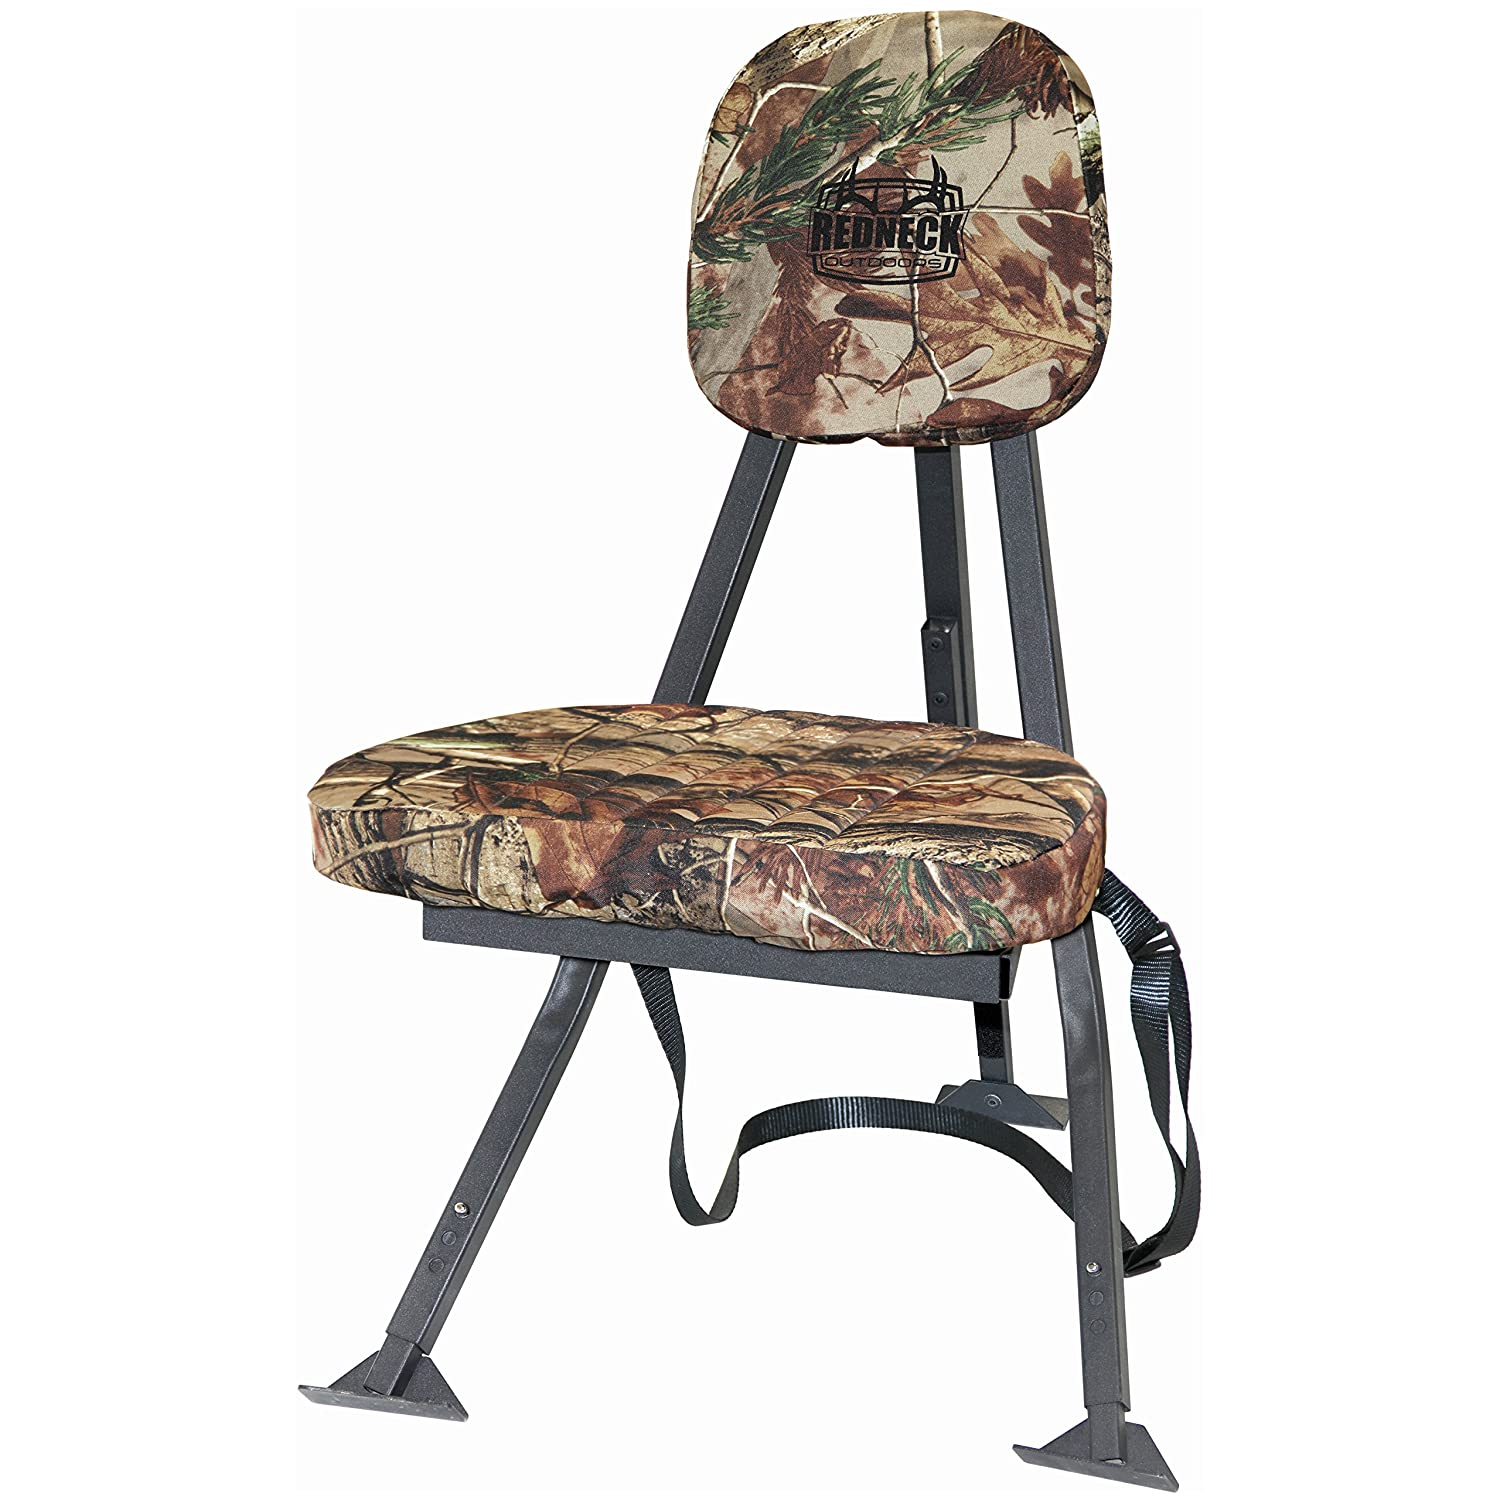 What Are The Best Swivel Hunting Chairs For Big Men For